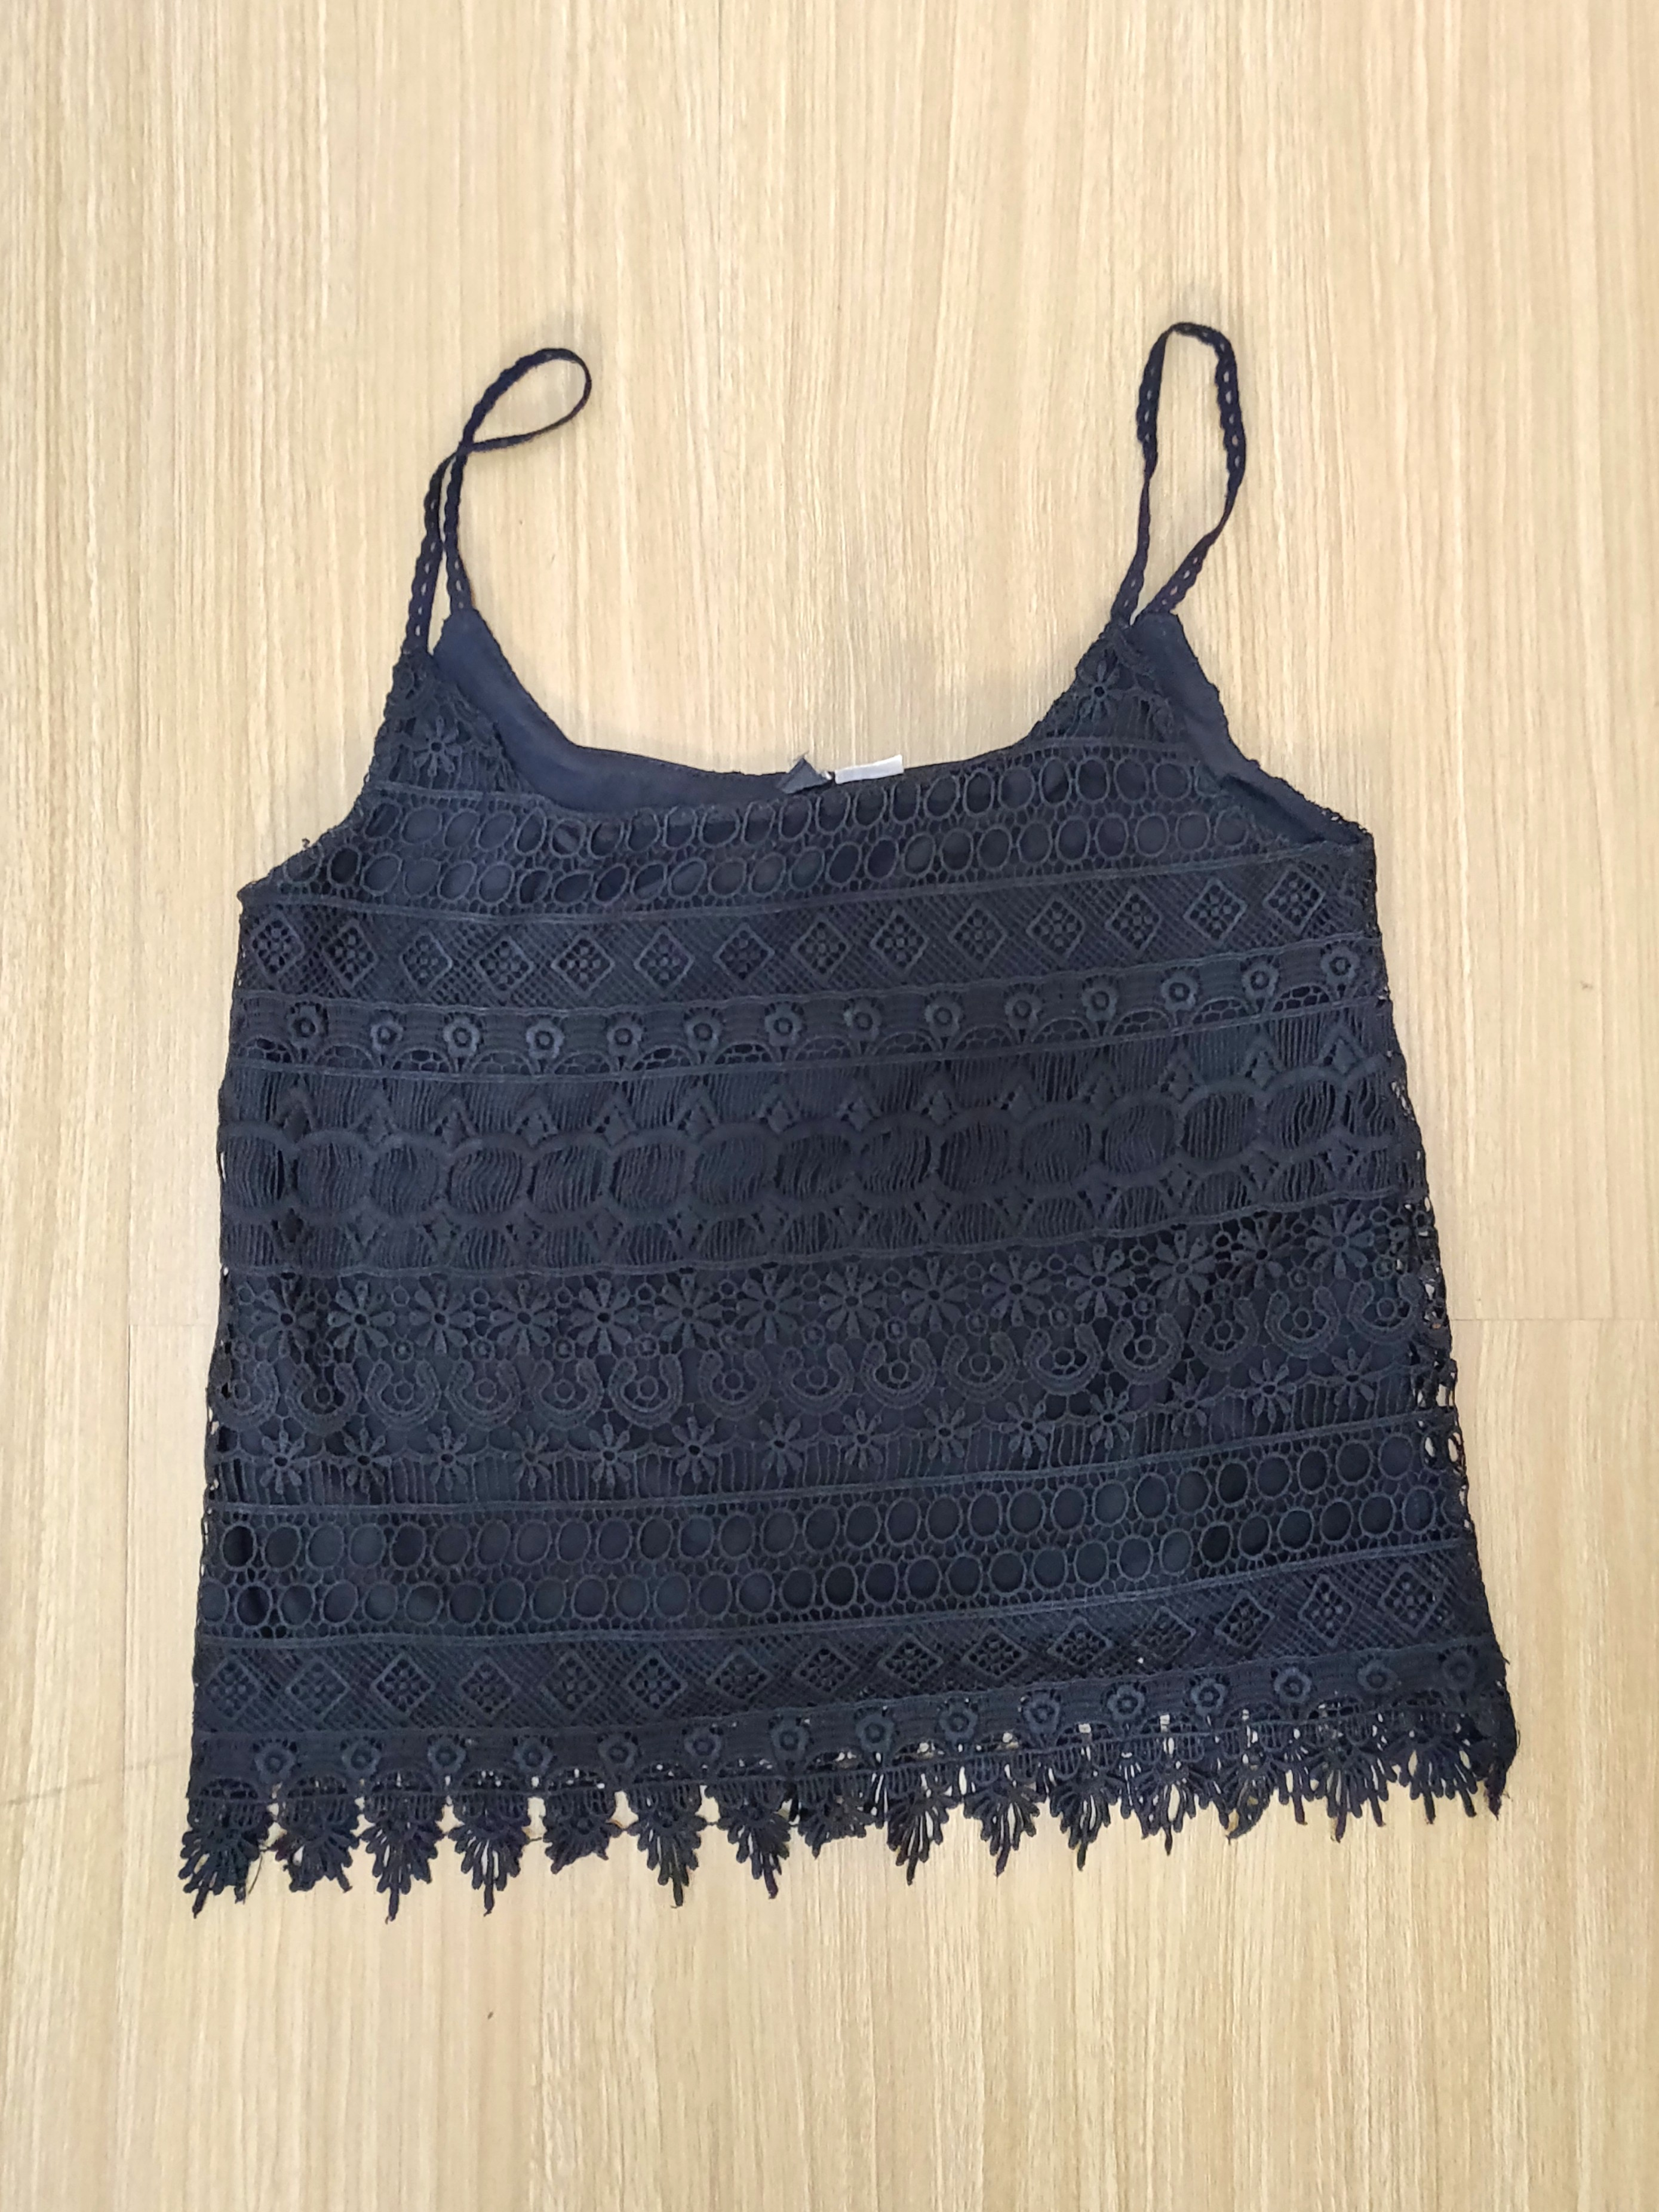 a66a8e59c3c3ea H&M black top with lace, Women's Fashion, Clothes, Tops on Carousell